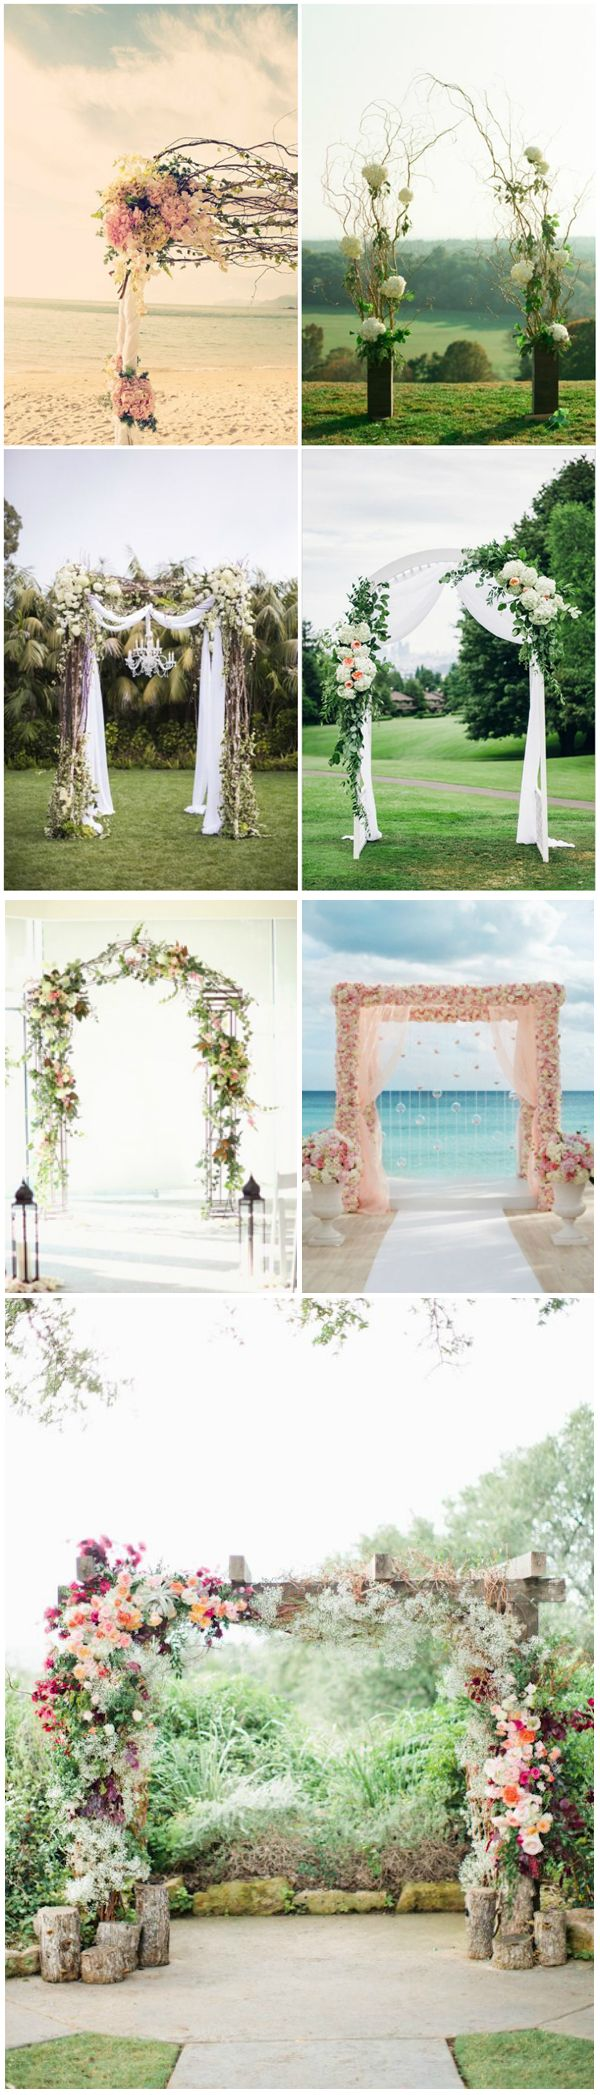 100 best images about wedding arbors on pinterest for Arbor wedding decoration ideas